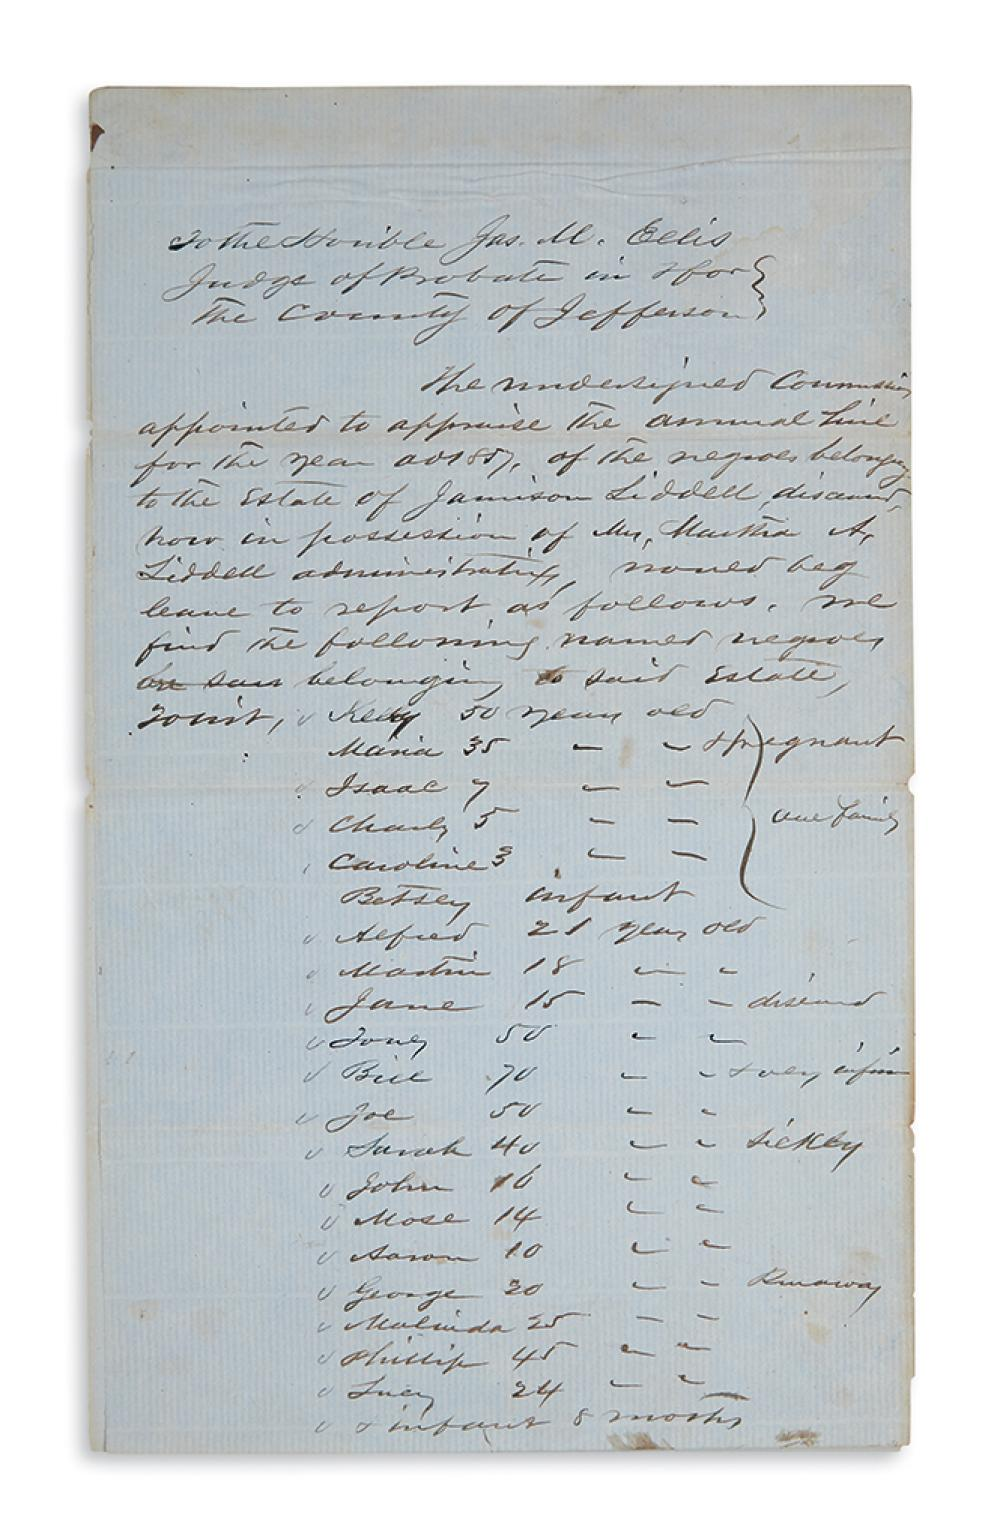 (SLAVERY AND ABOLITION.) Estate appraisal of 26 slaves in Mississippi.